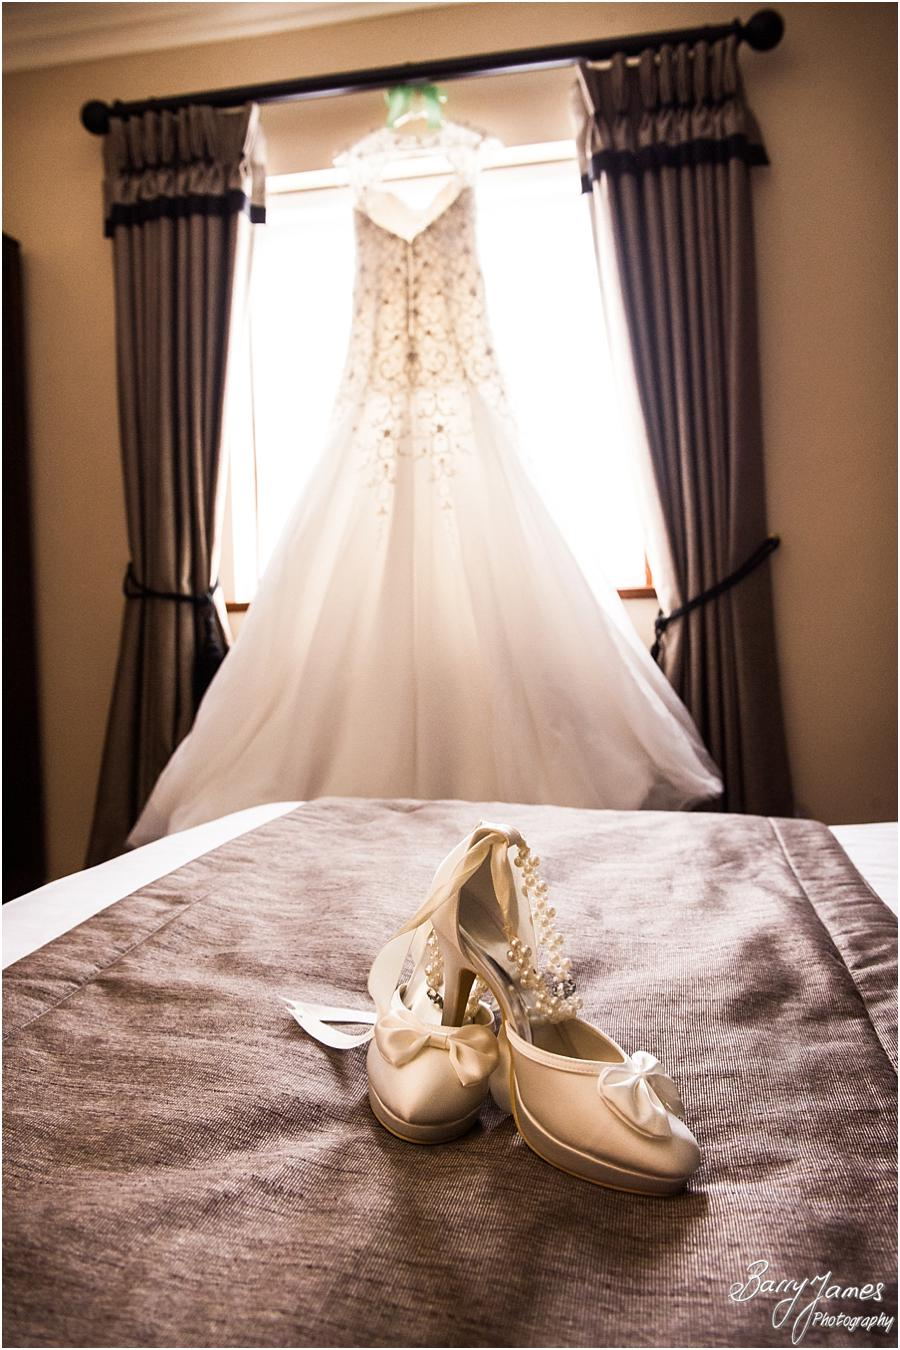 Stunning bridal gown for the fairytale wedding at The Moat House